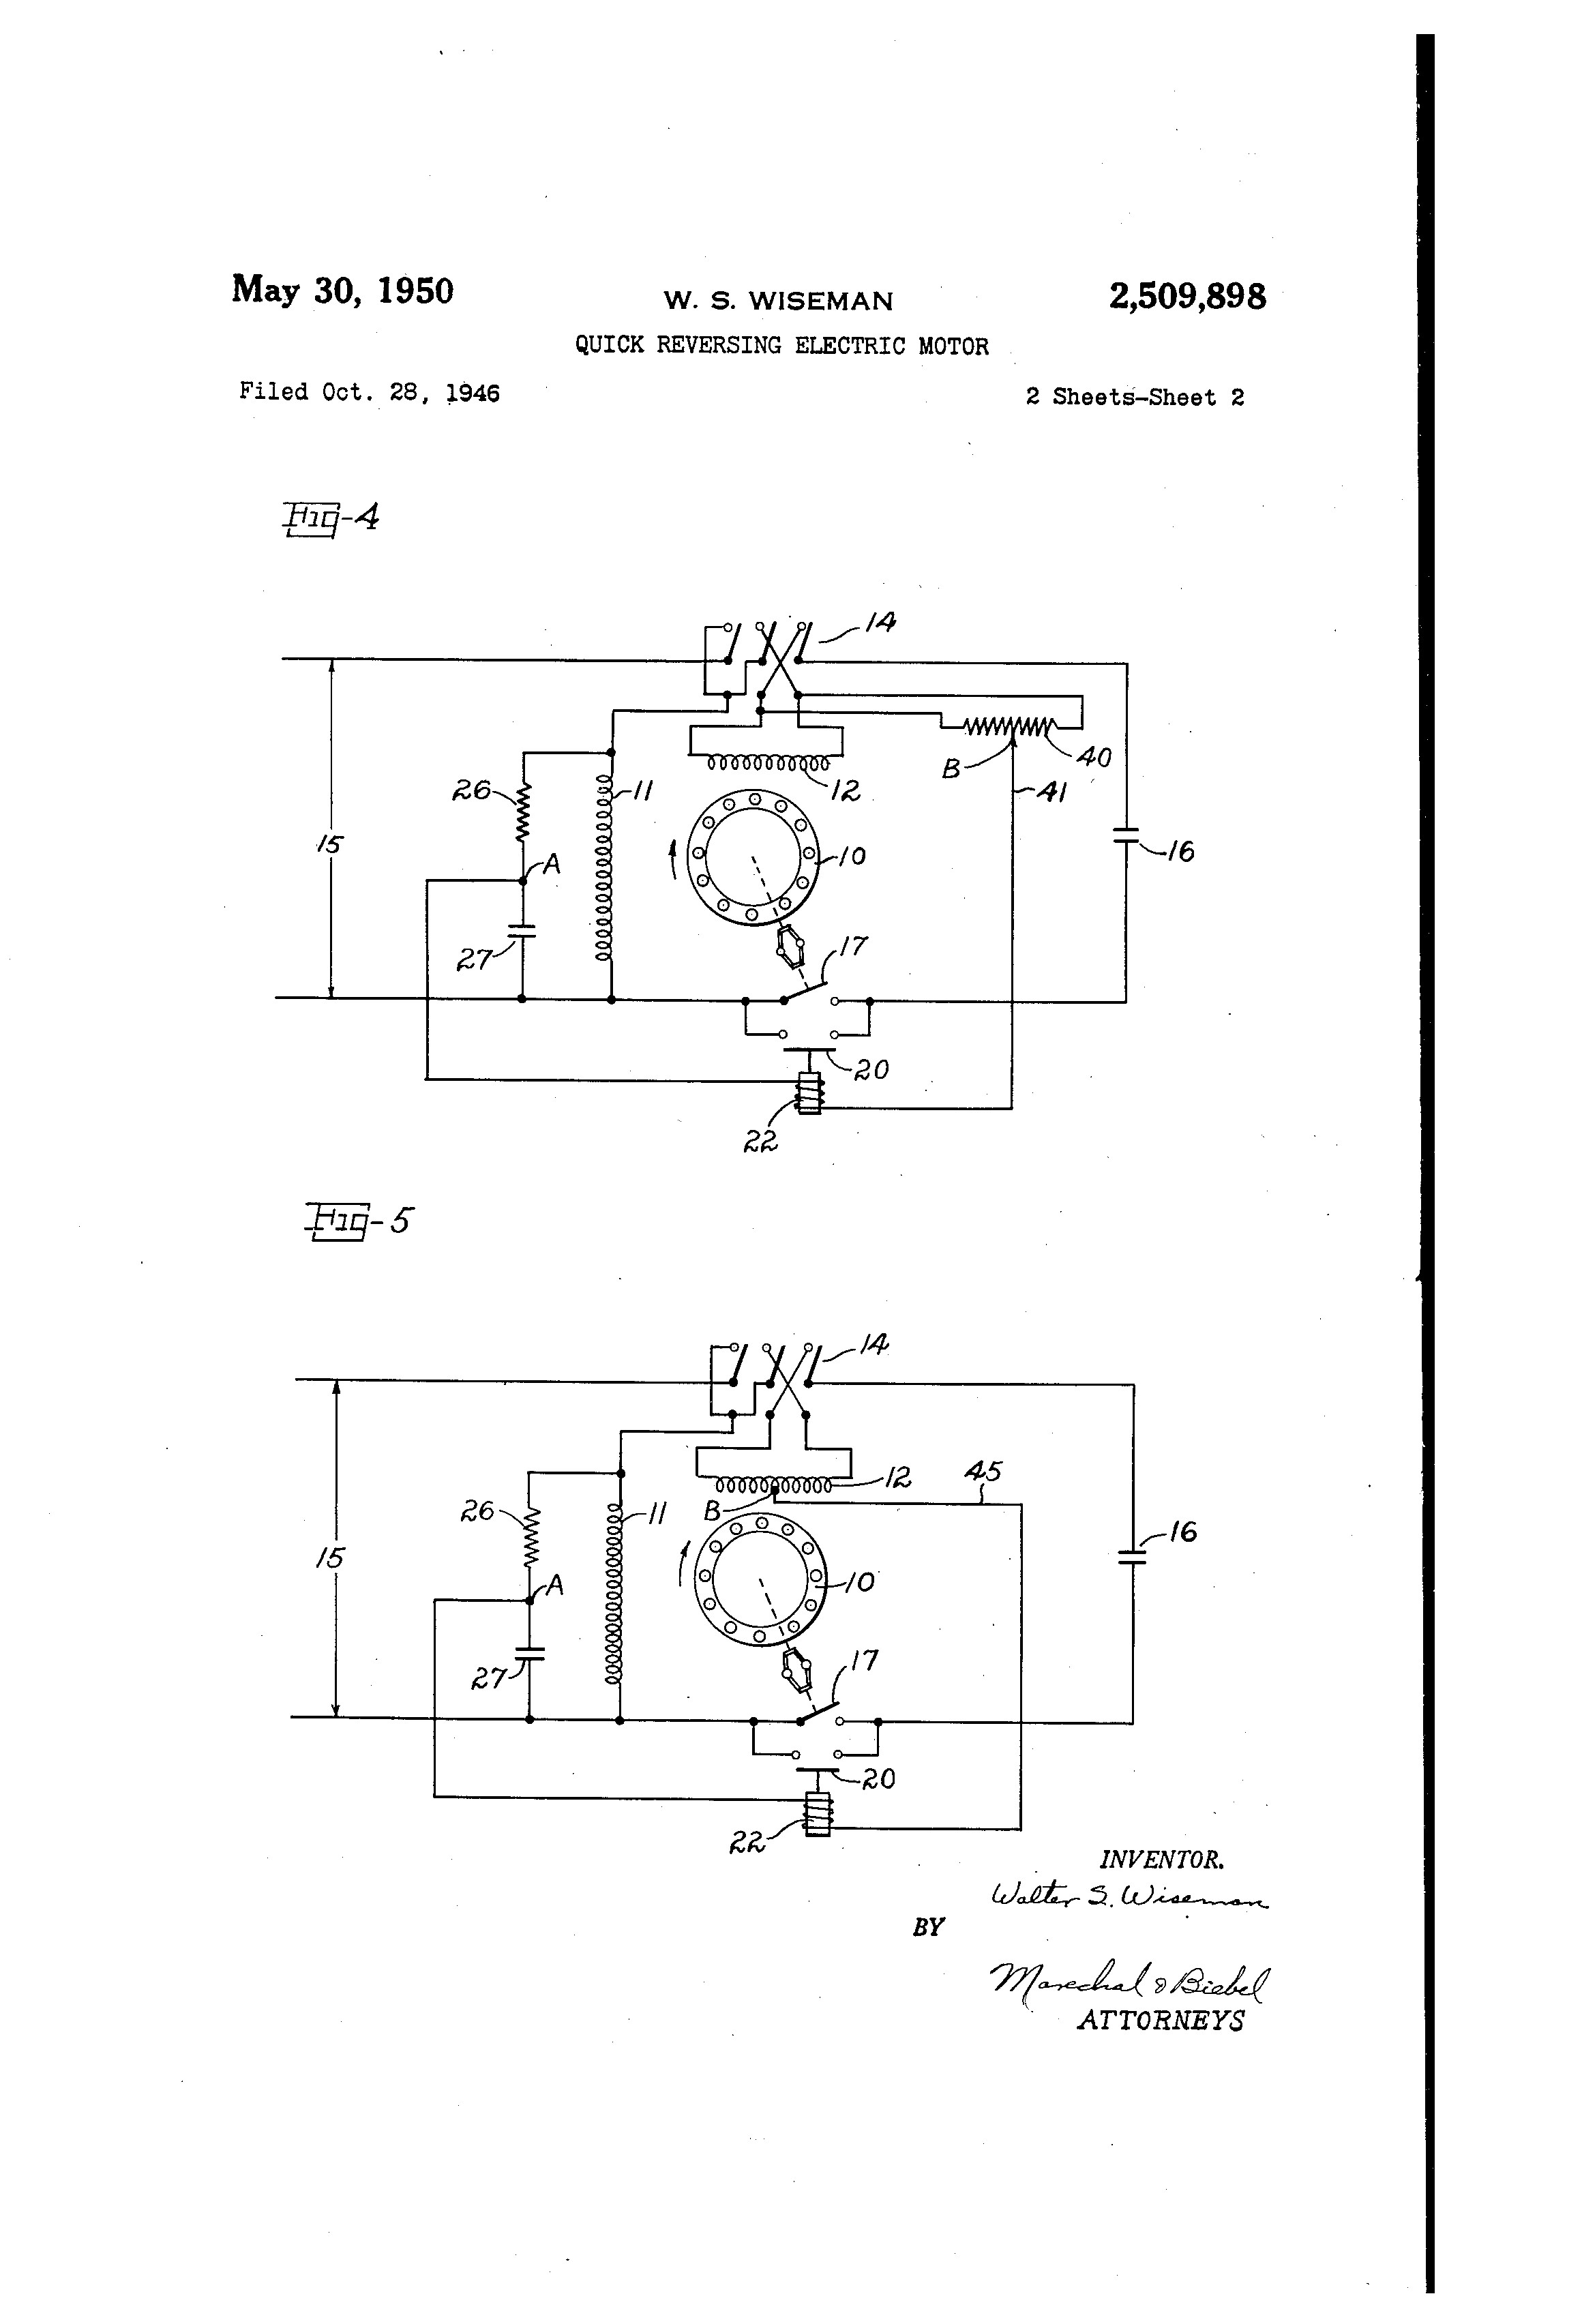 Wagner Electric Motor Wiring Diagram Wiring Diagram for Single Phase Motor  Luxury Patent Us Single